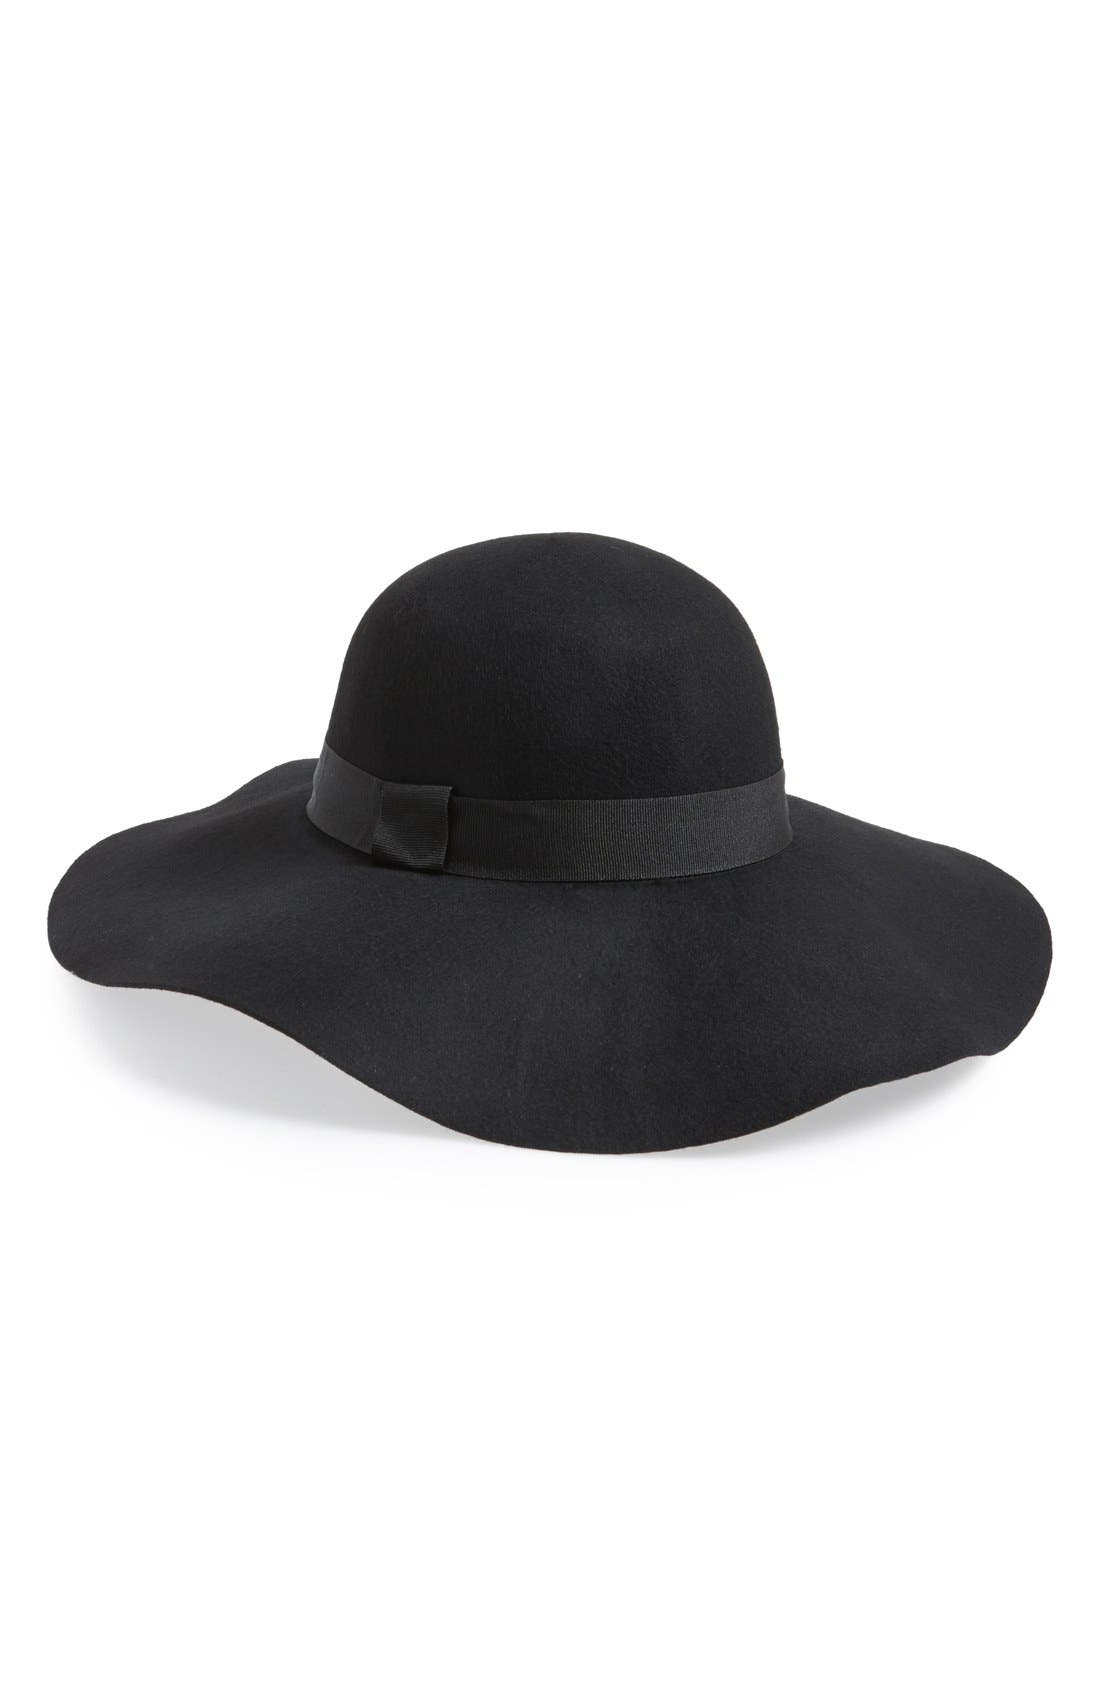 Alternate Image 1 Selected - David & Young Floppy Felt Hat (Juniors)